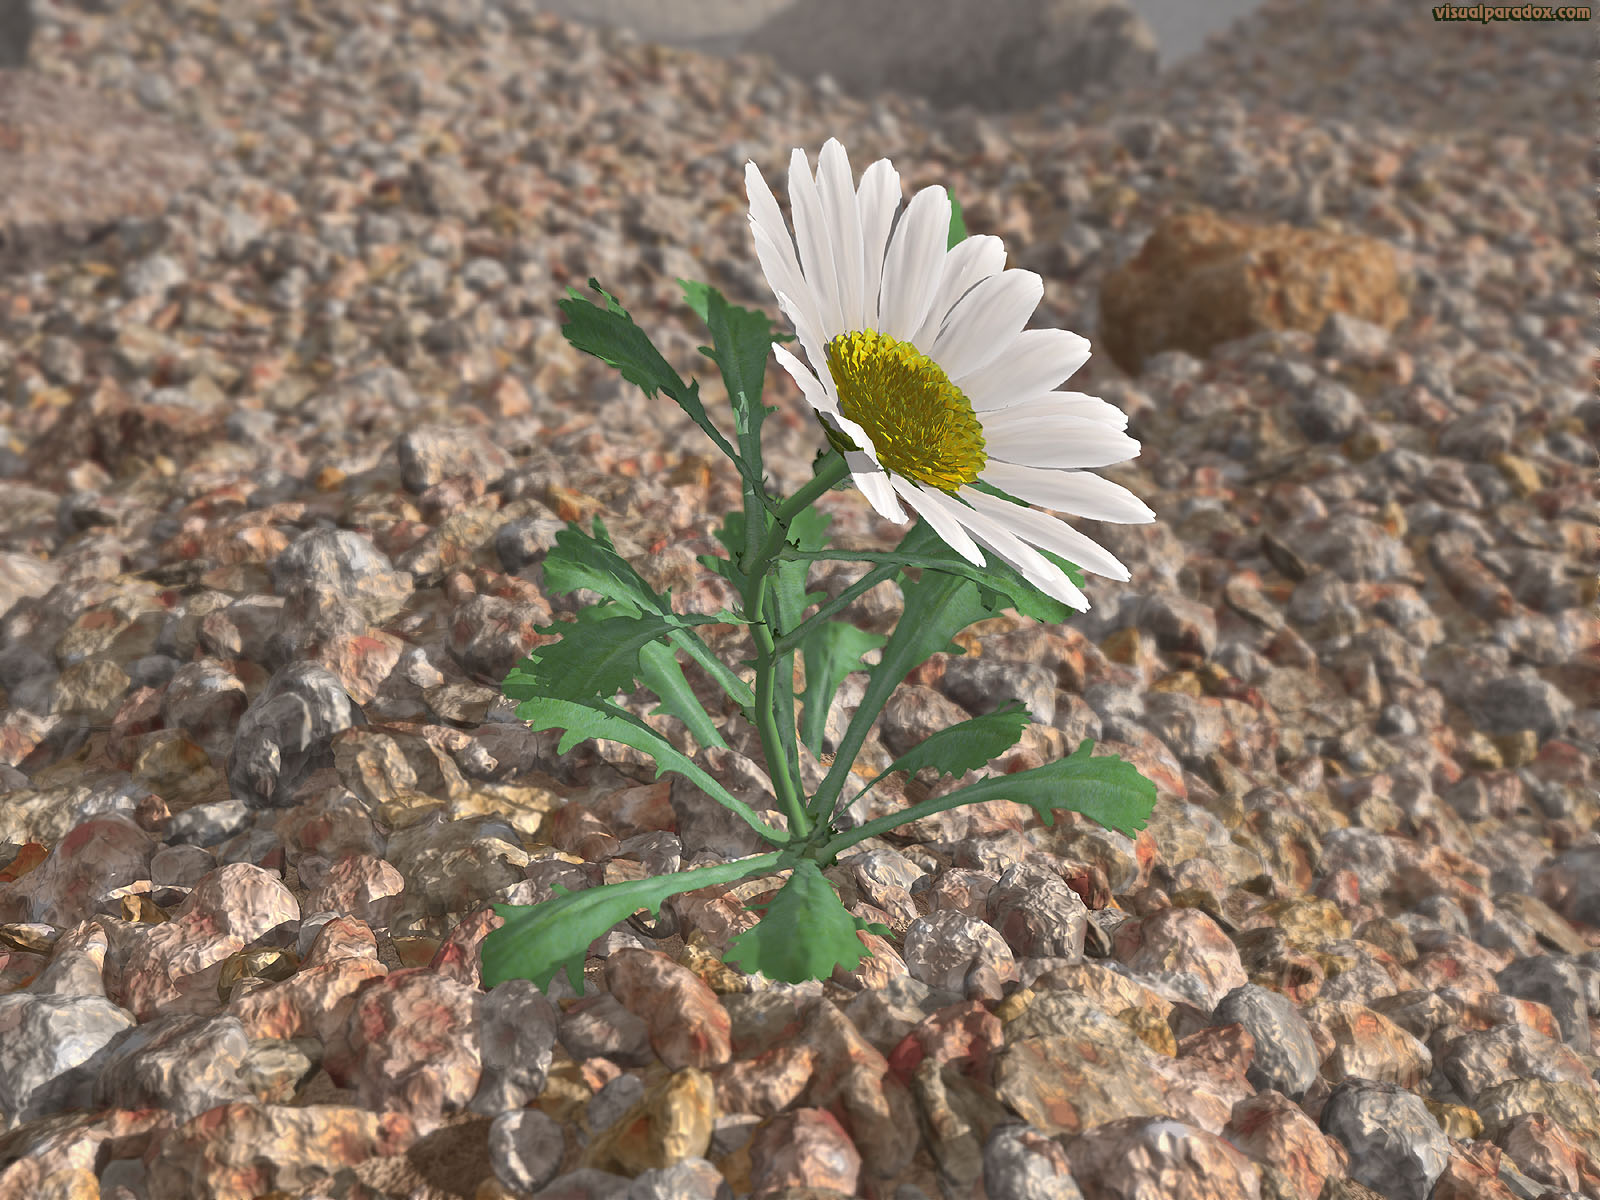 flower, wildflower, petal, weed, lonely, struggle, survive, Shasta, lazy, daisies, rocks, gravel, aggregate, lone, 3d, wallpaper